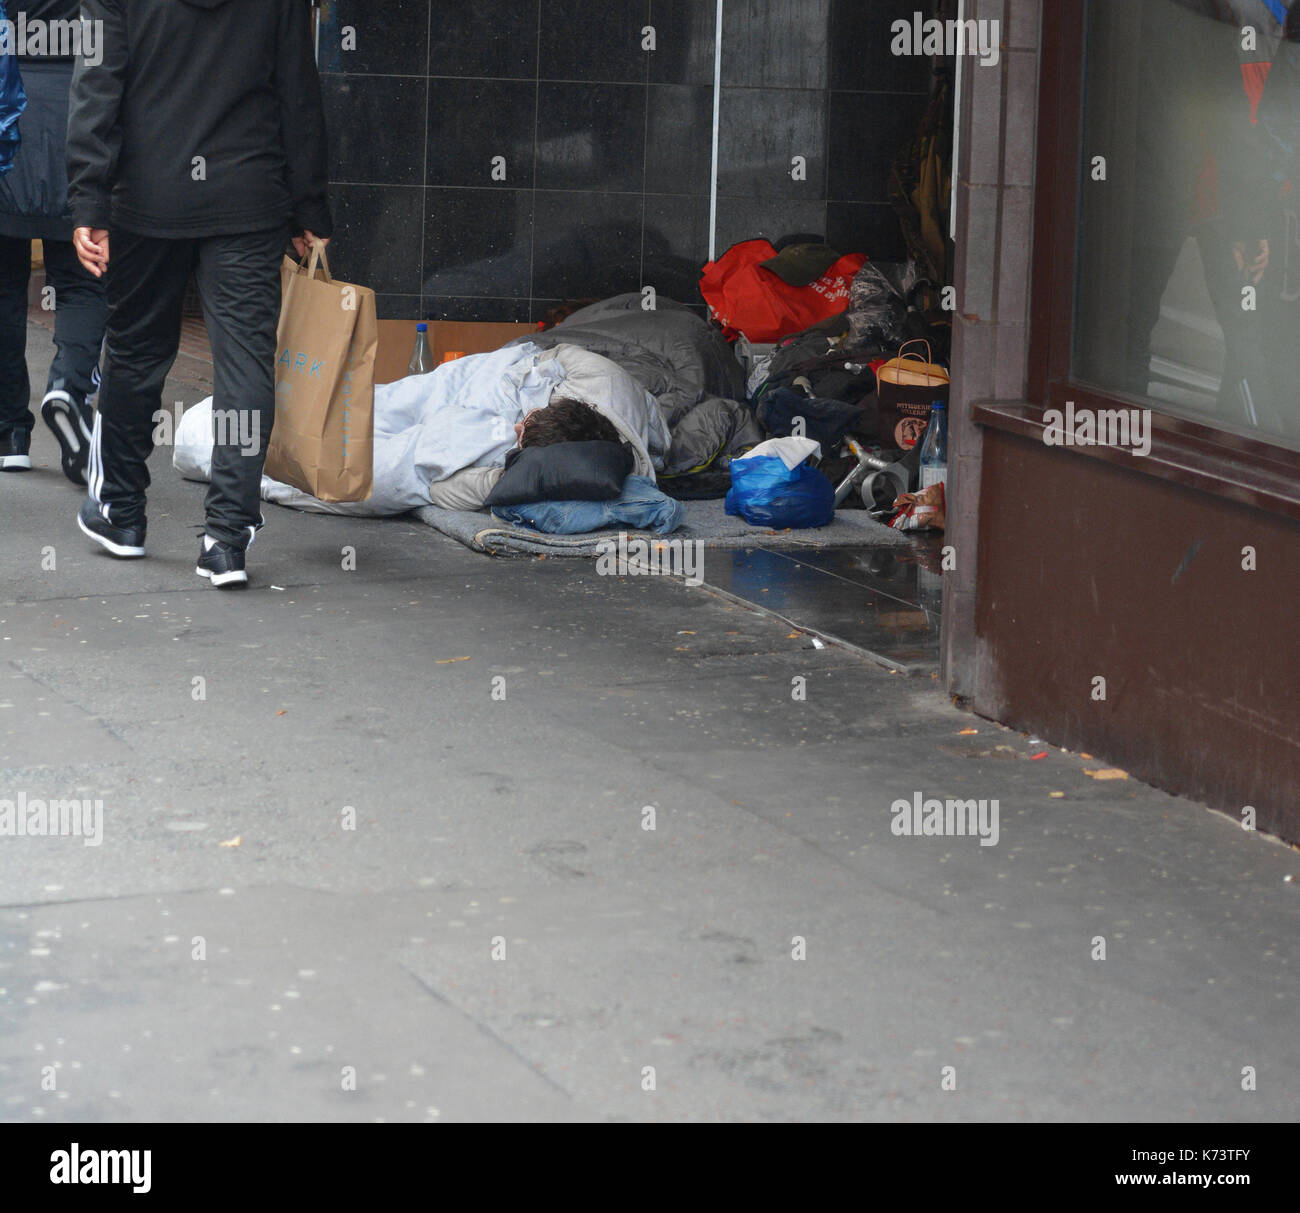 Homeless Person Sleeping In A Doorway Stock Photos